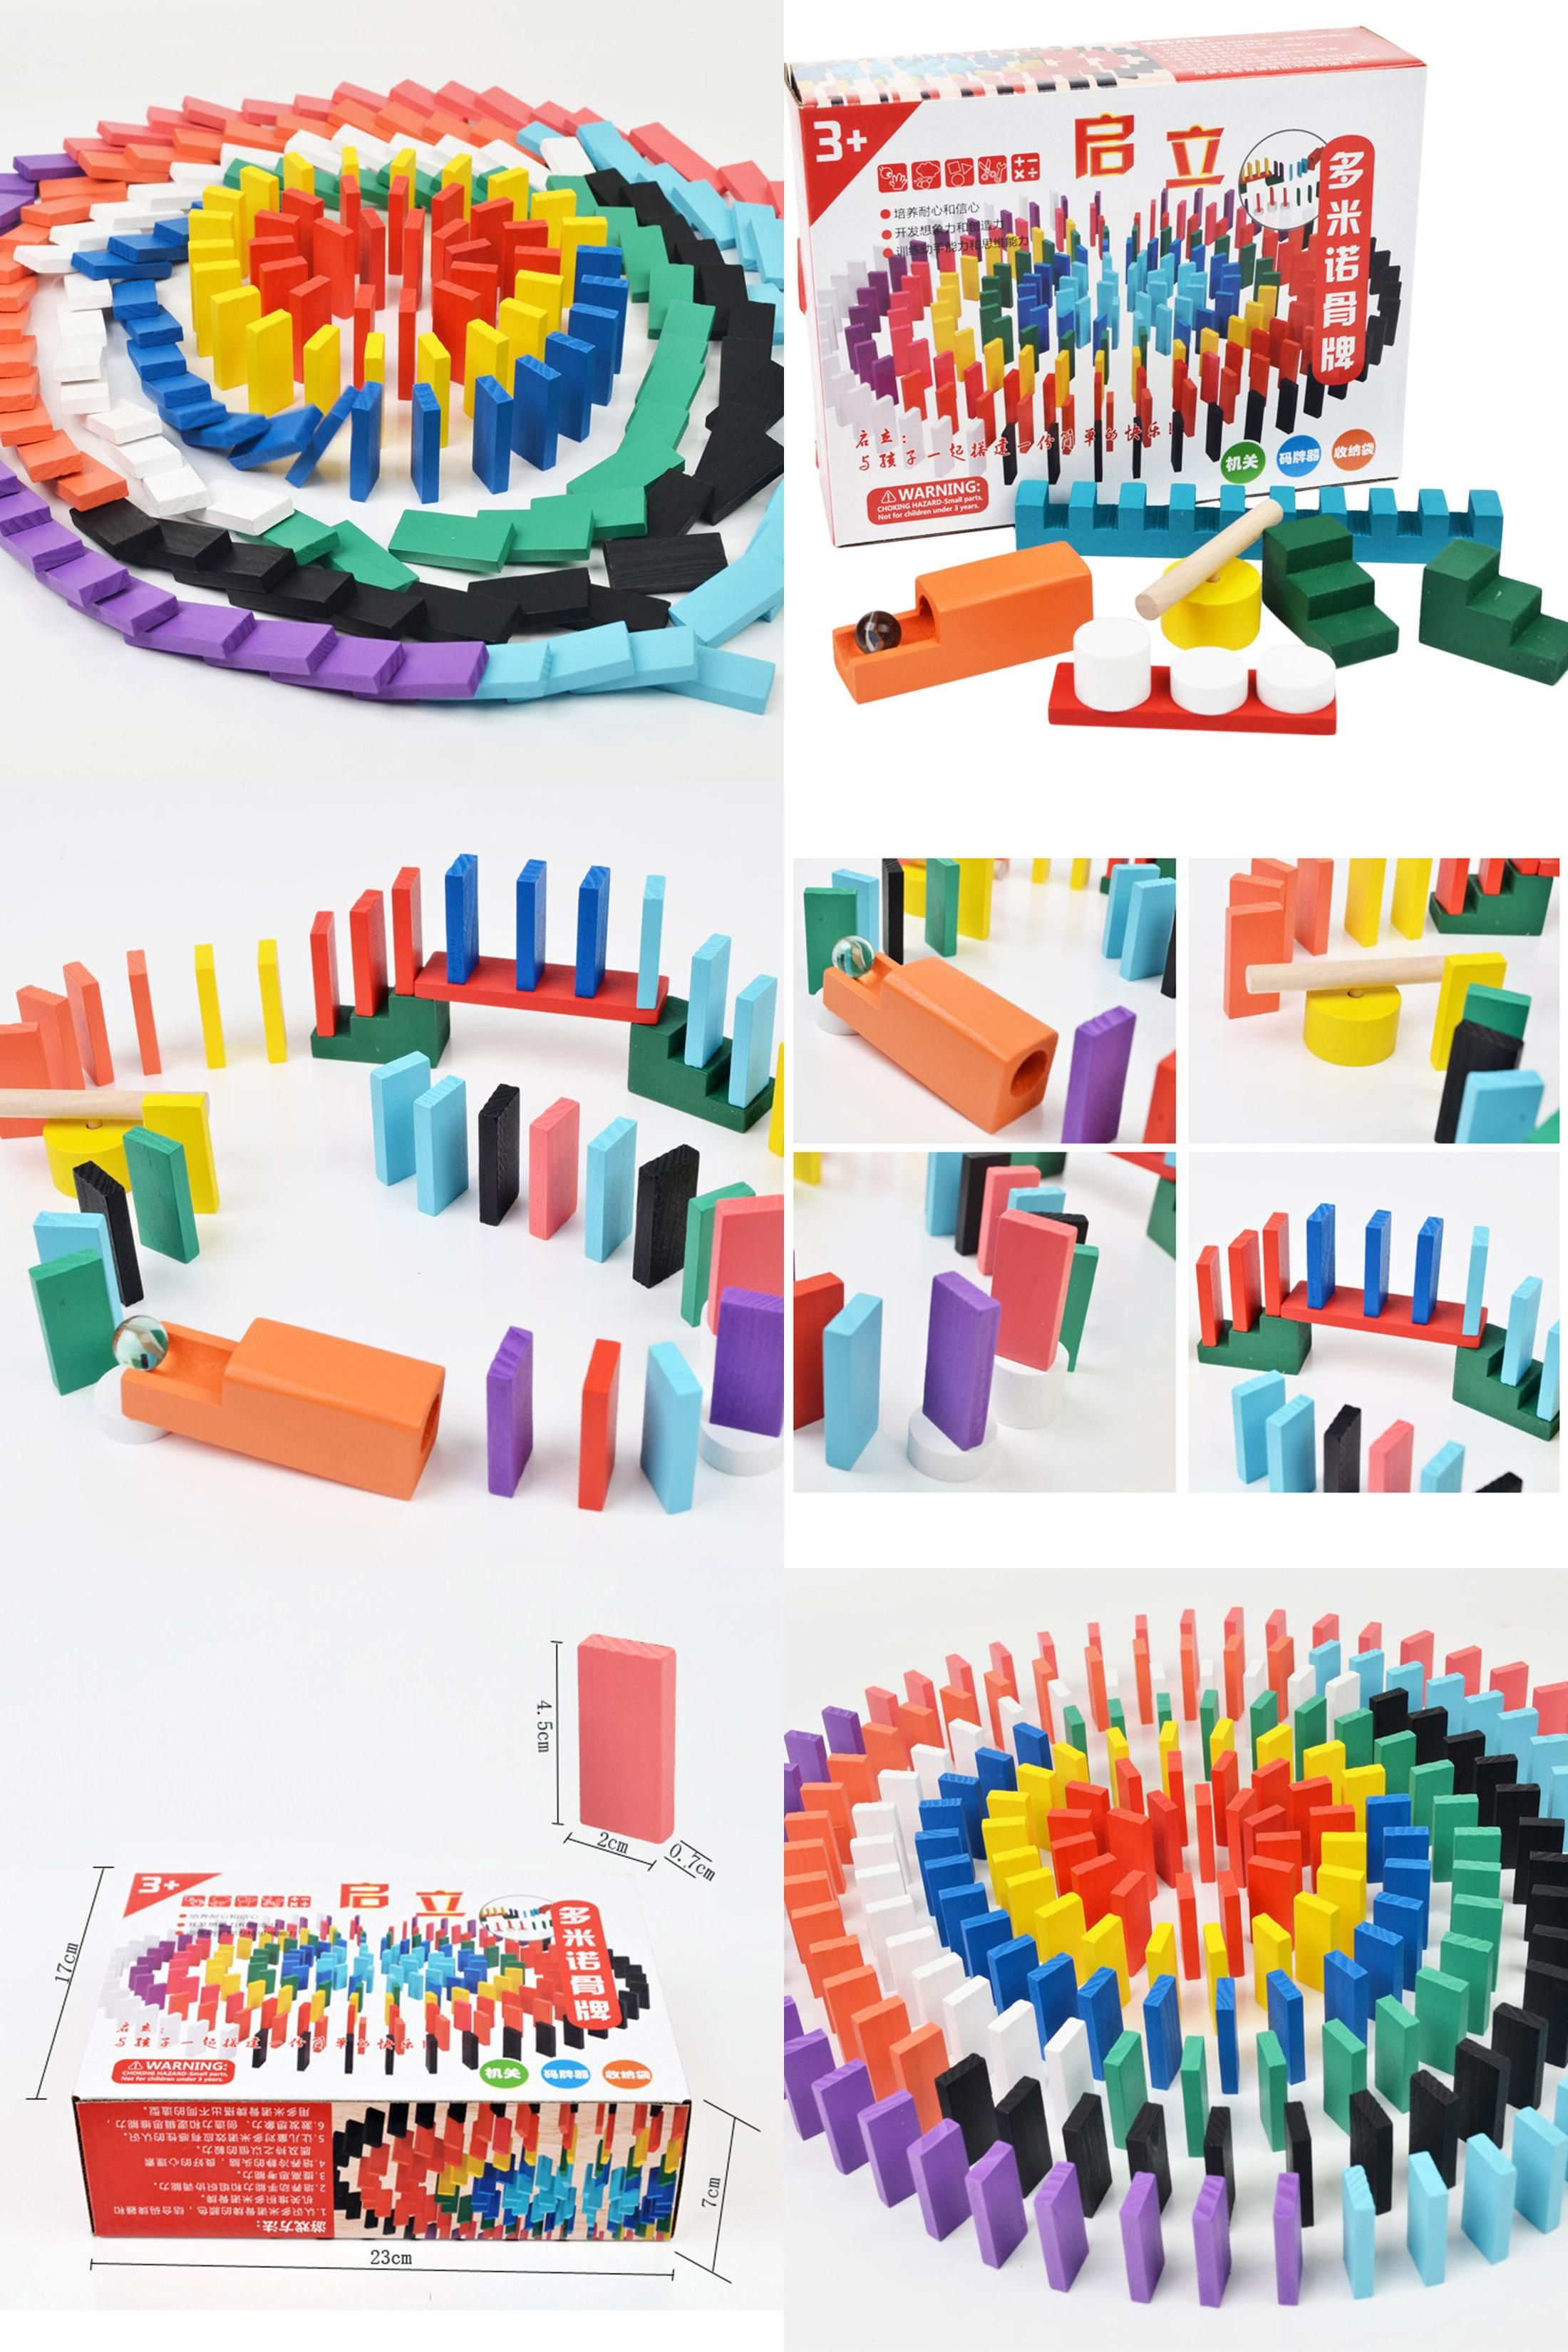 Visit to Buy] 200Pcs Wooden Colored Domino Blocks Game Set for